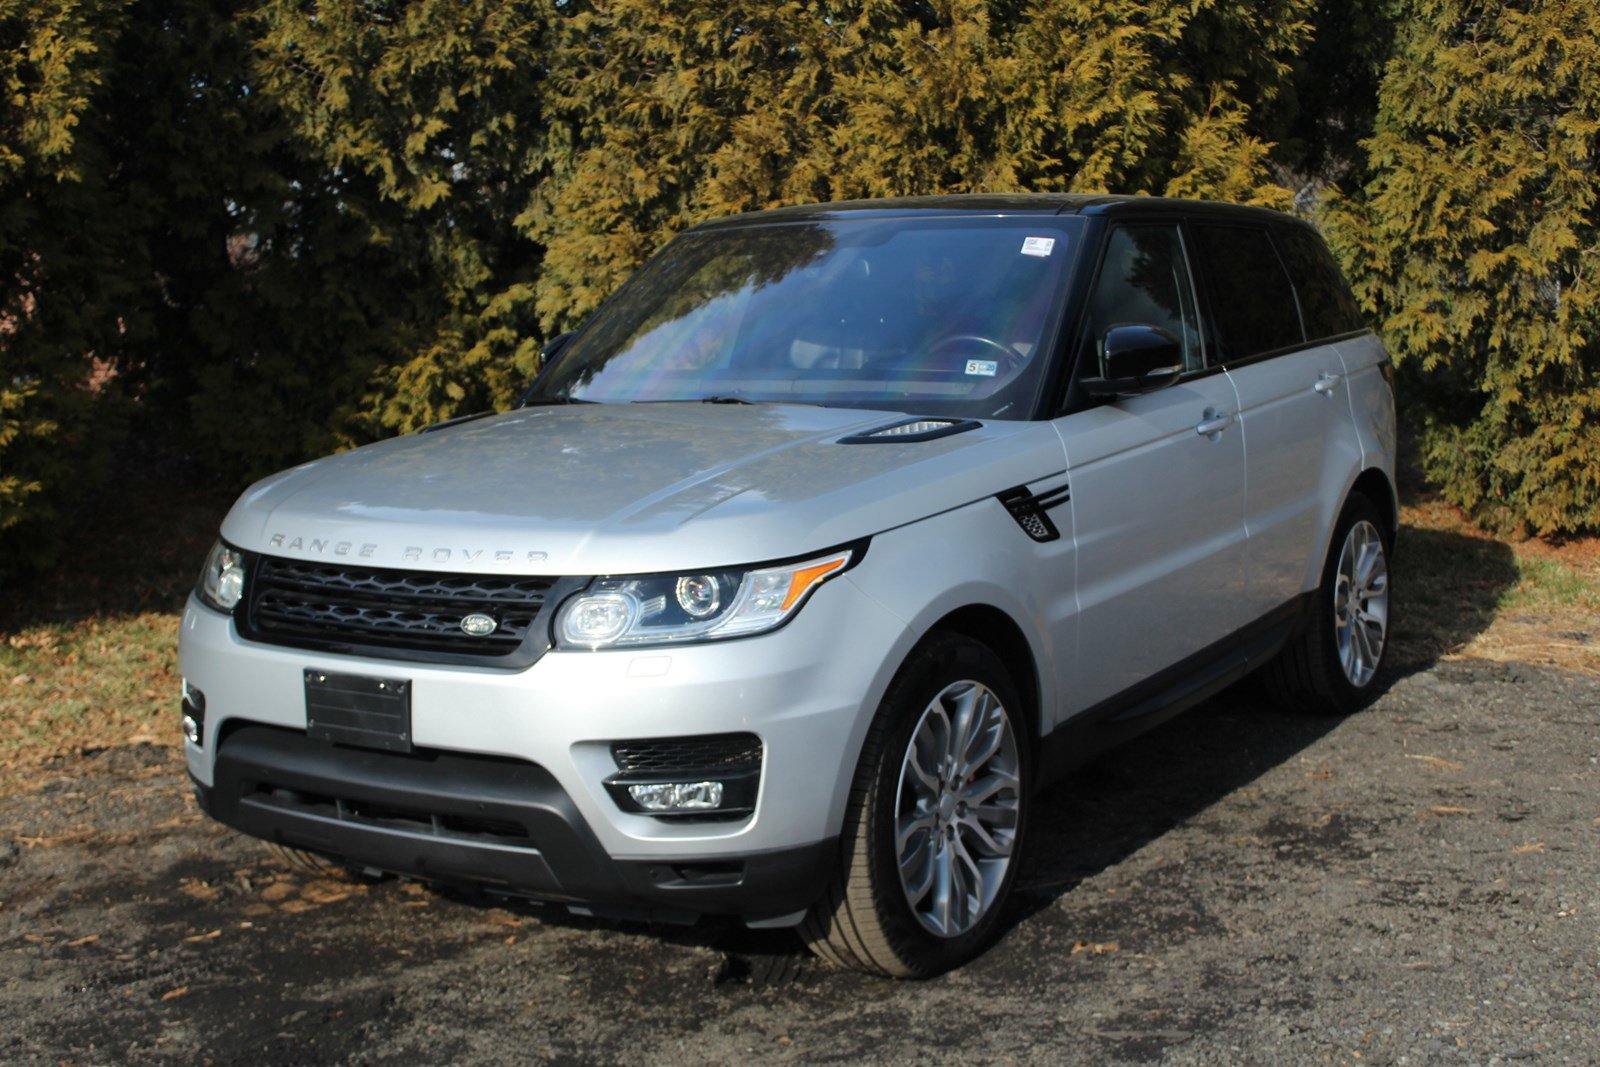 2016 Land Rover Range Rover Sport Supercharged image